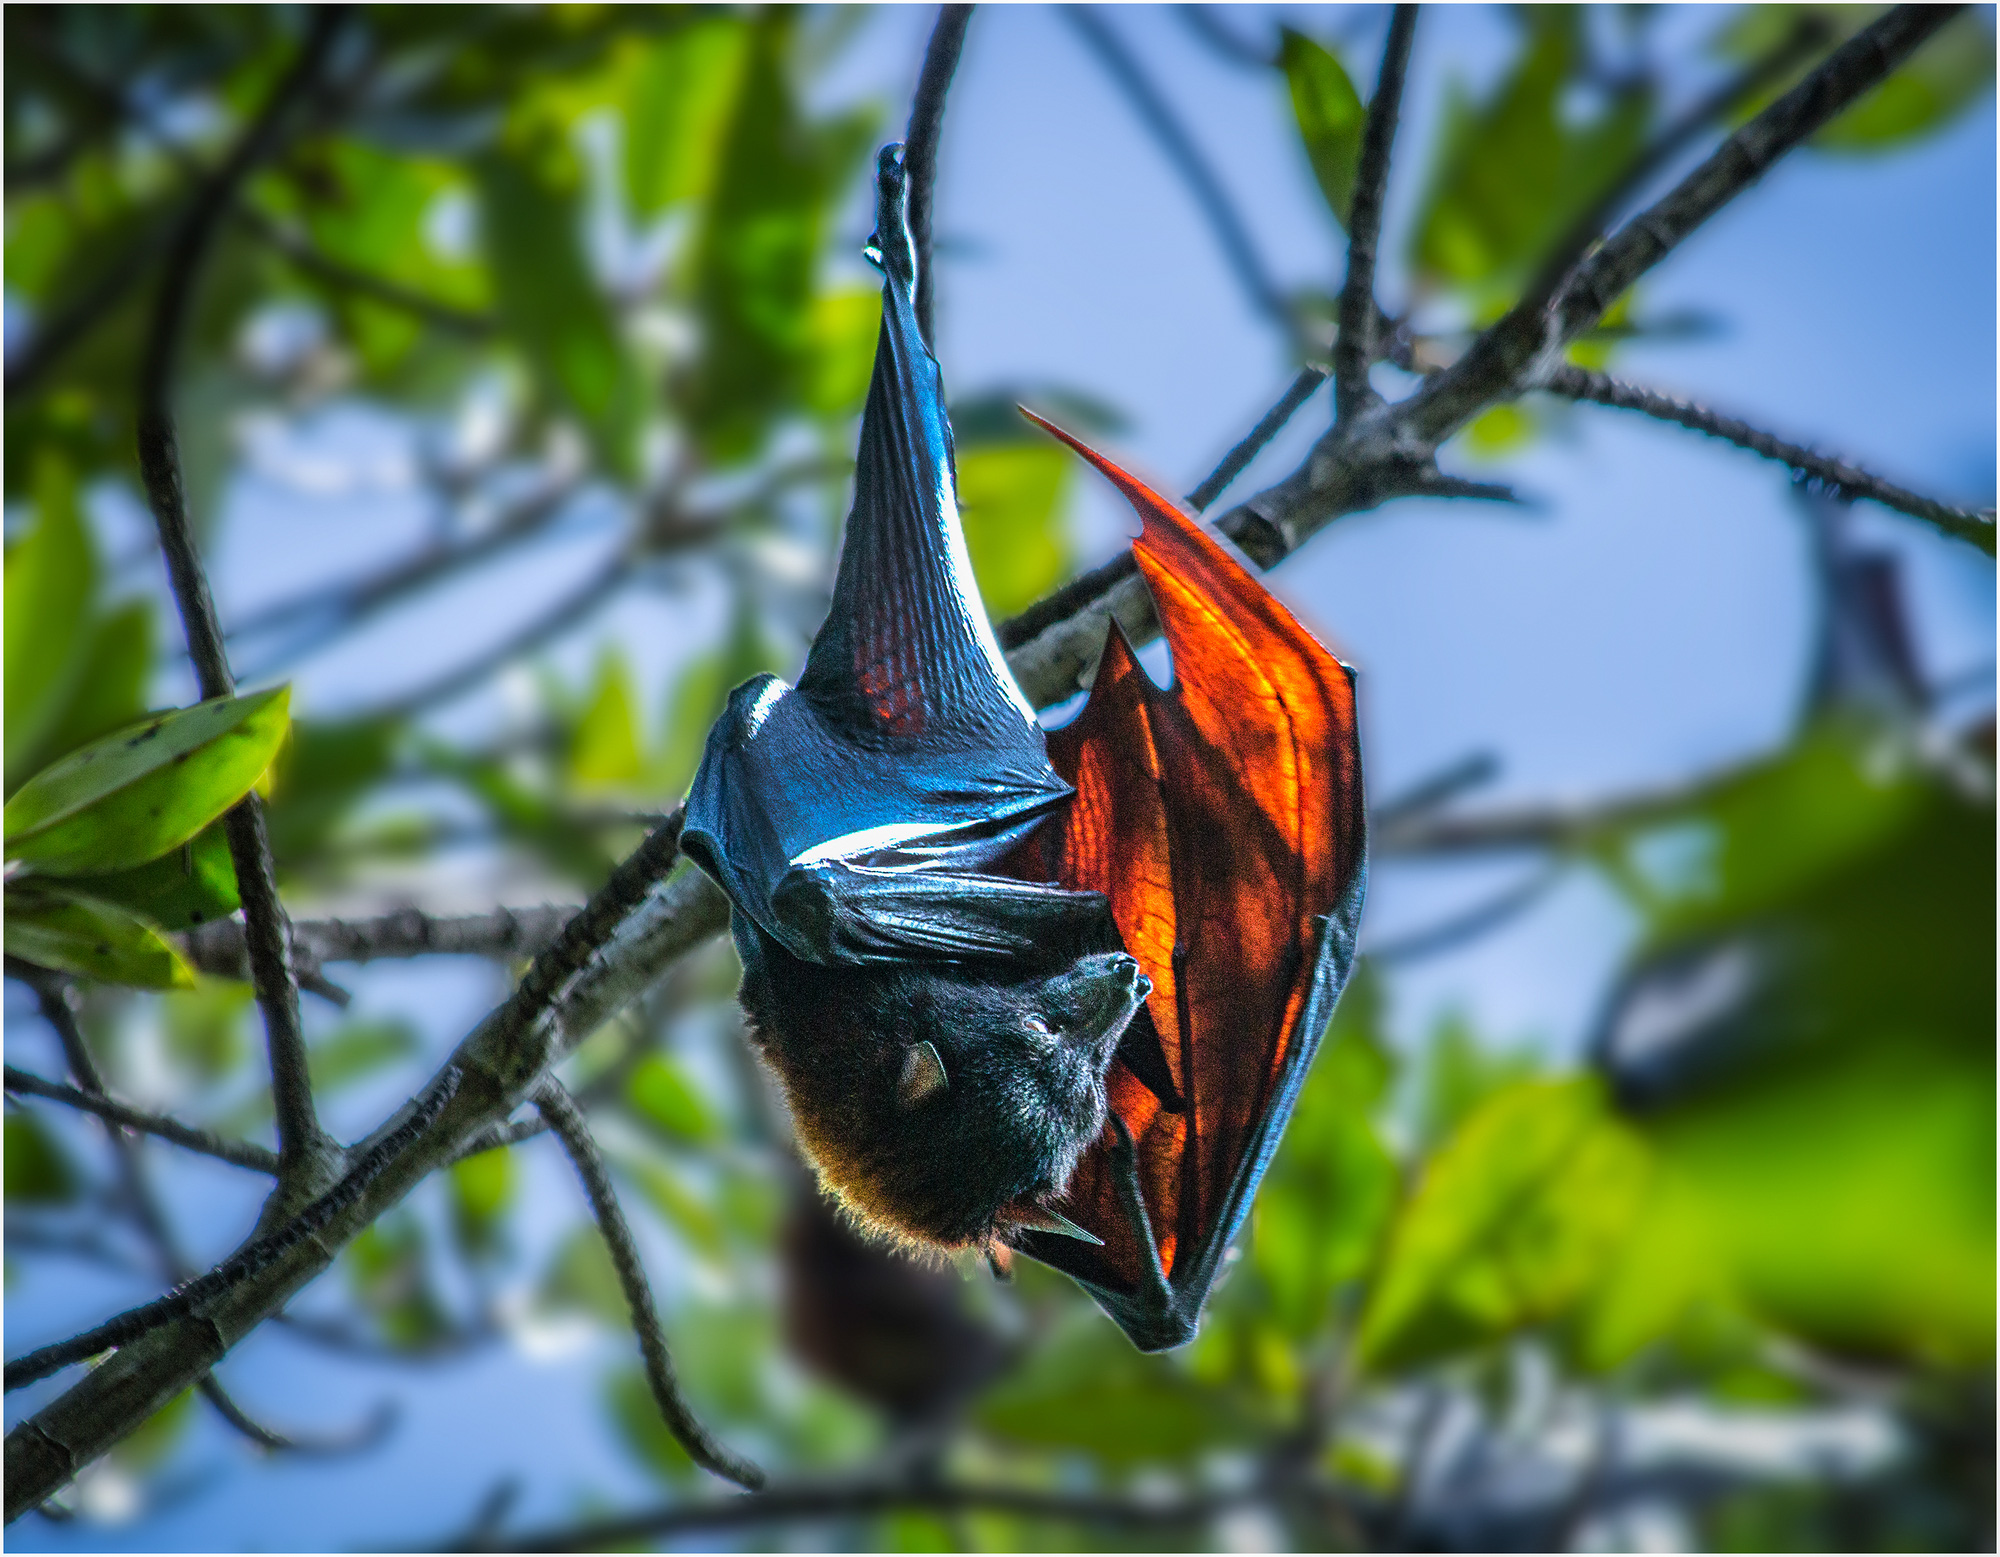 A bat hangs upside down in this photo by Pham Thanh Son, which won third prize at a local photo contest.